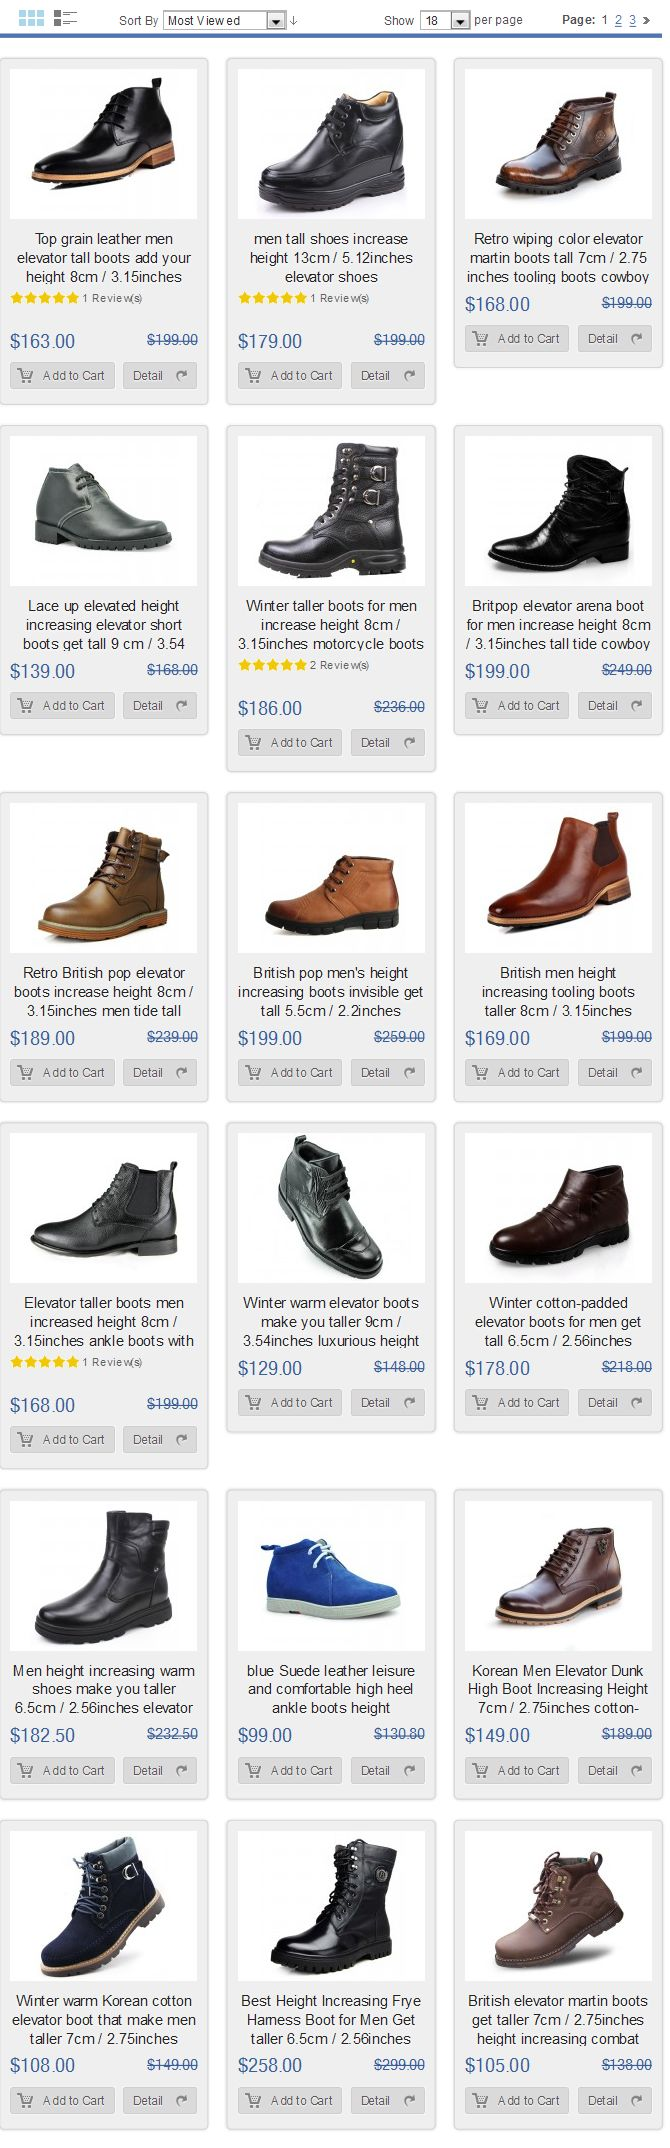 Most reviewed men elevator boots shoes at topoutshoes.com